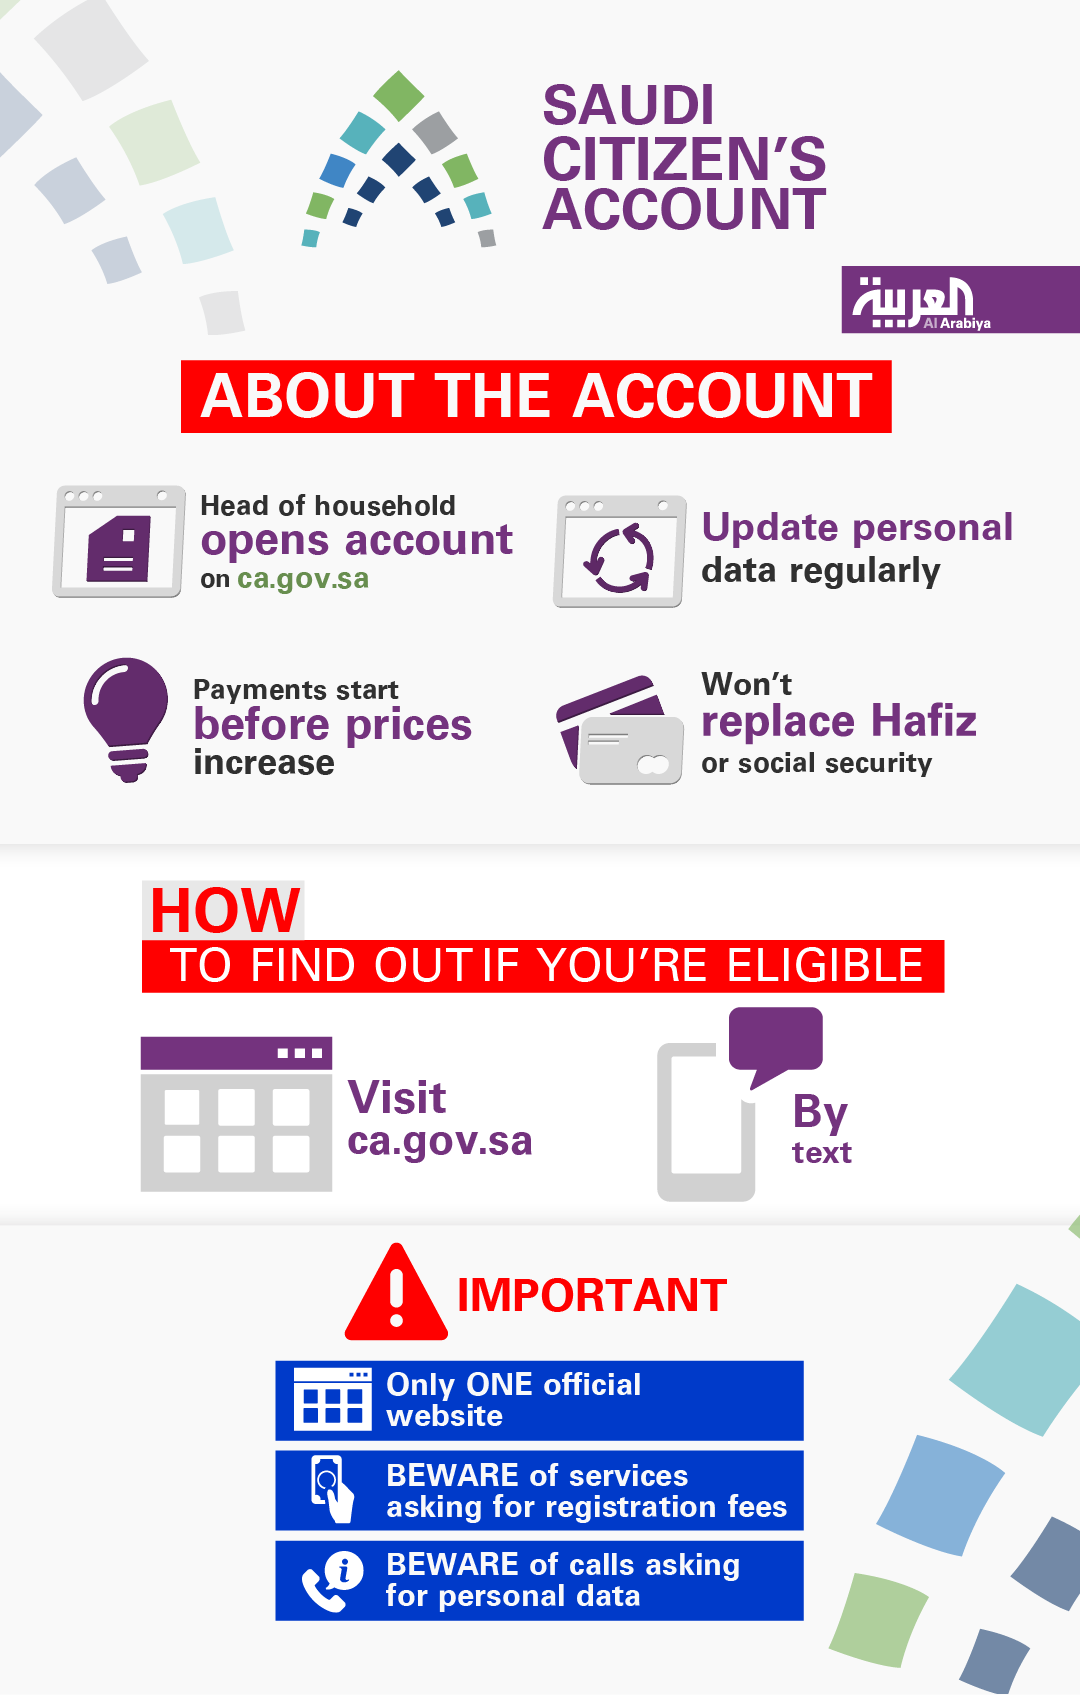 Saudi Citizen's Account infographic